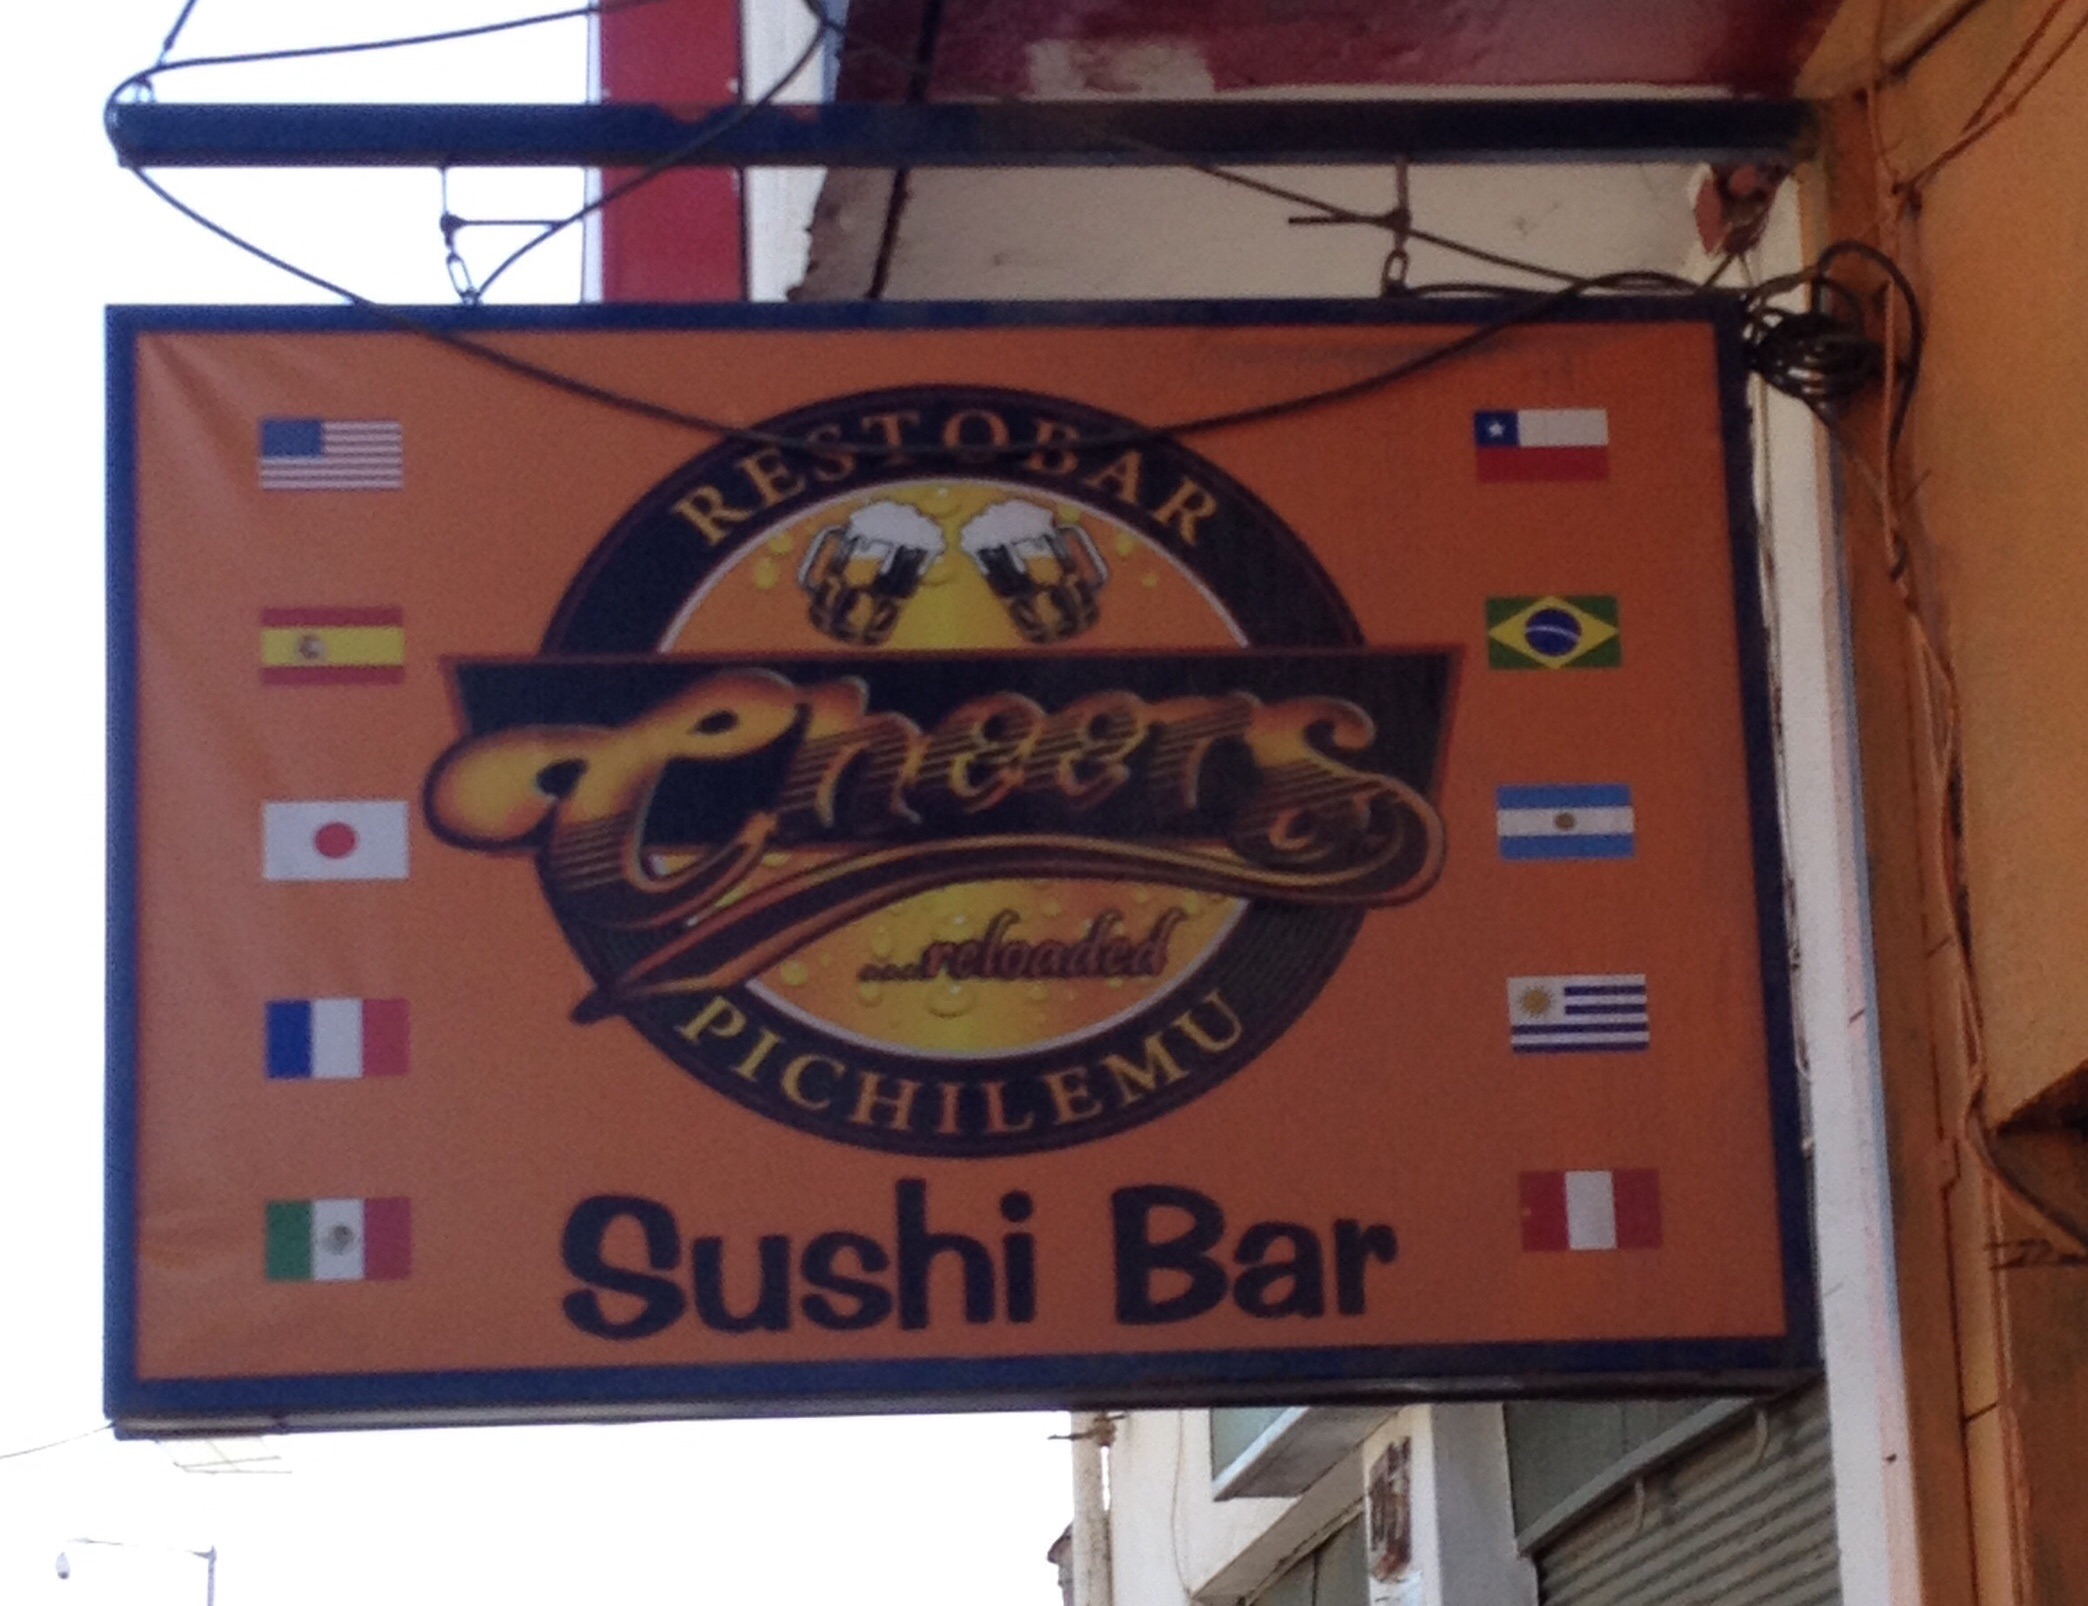 Hmmm, didn't think Cheers was a sushi place...